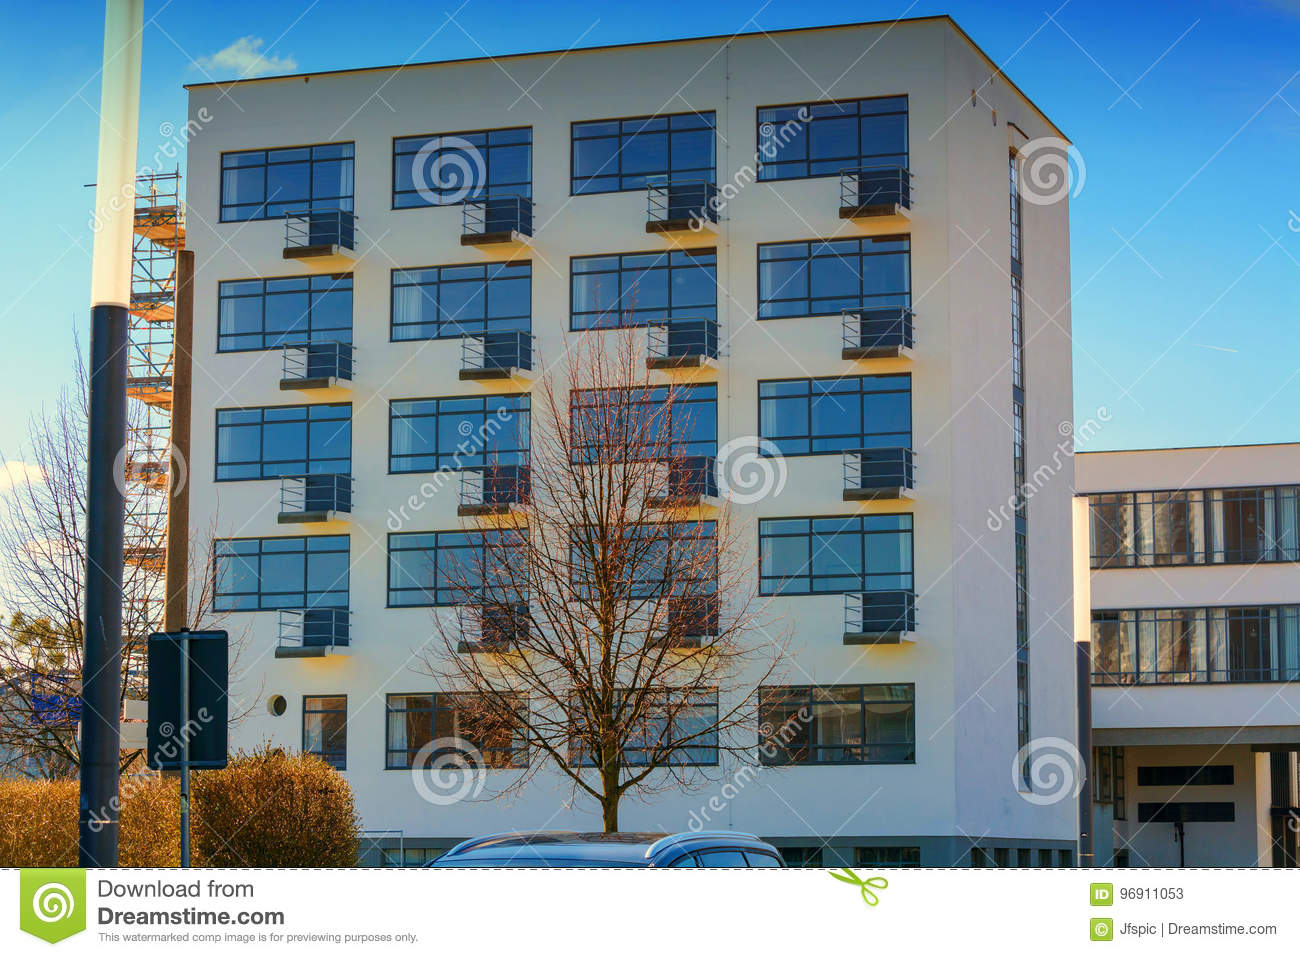 The Bauhaus In Dessau Stock Image Image Of Bauhaus Gropius 96911053